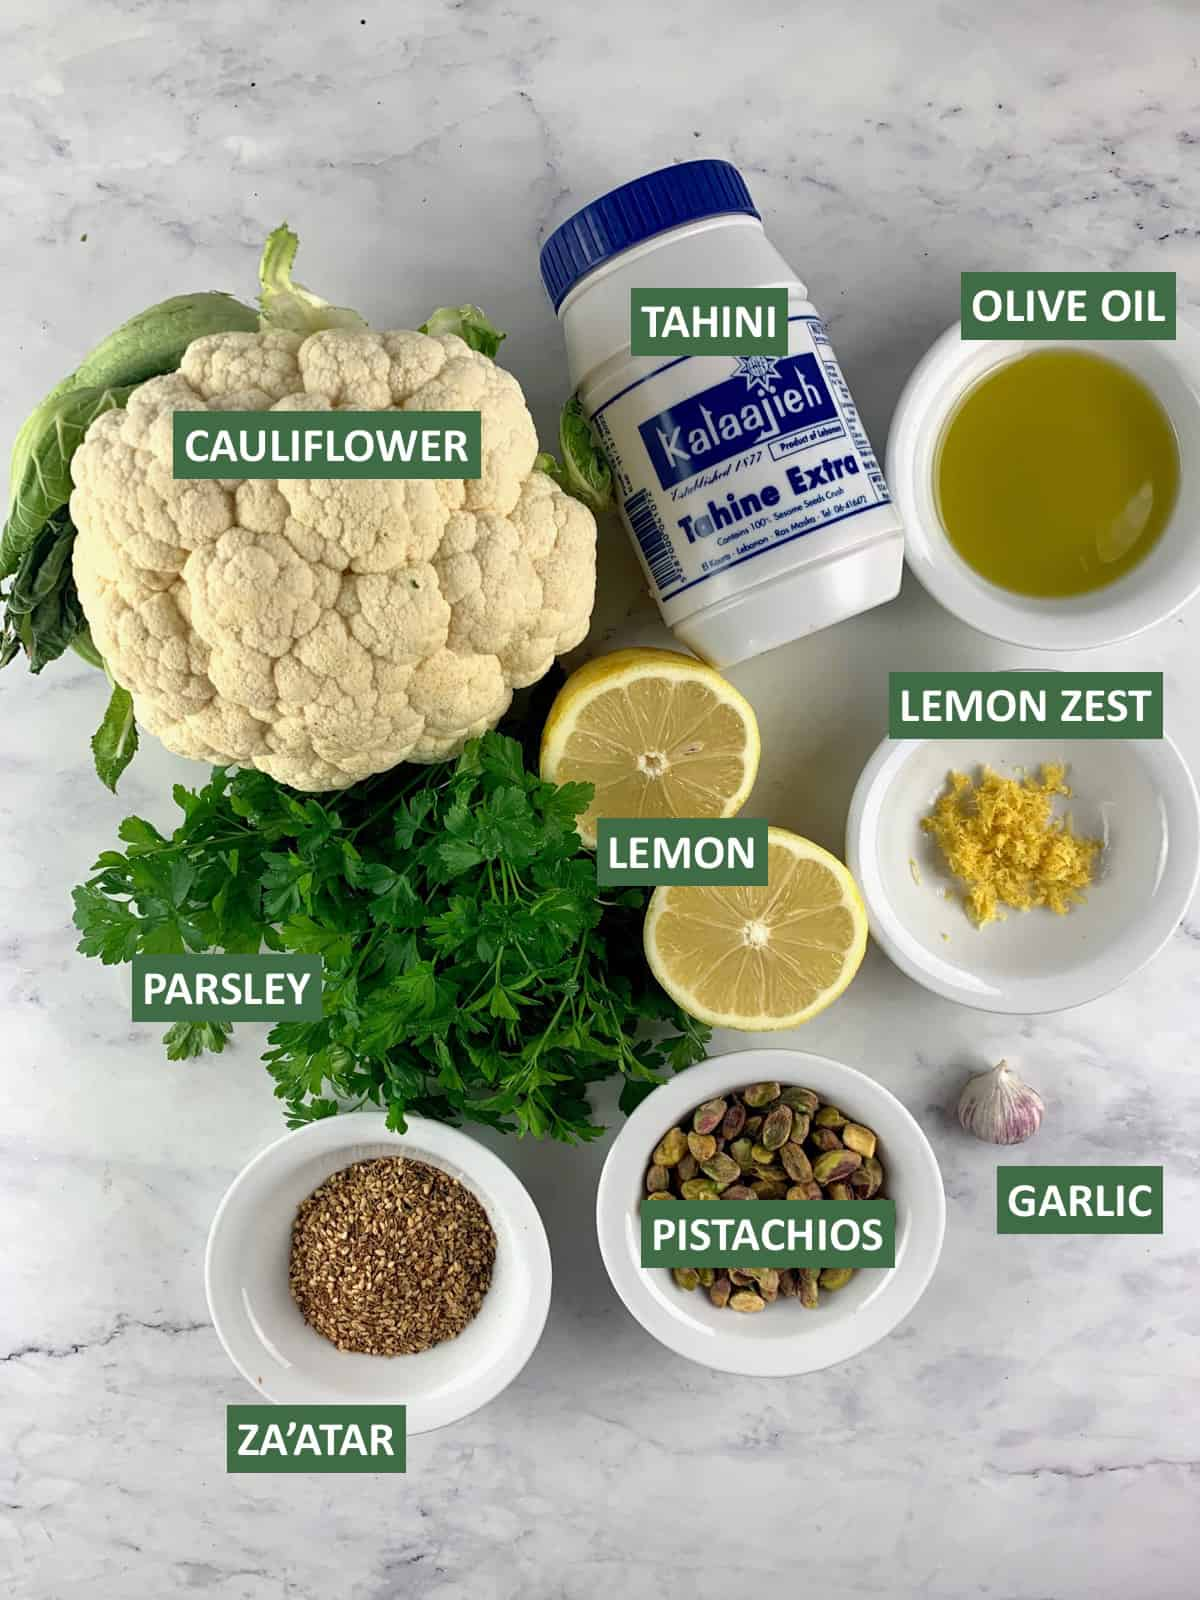 INGREDIENTS FOR MAKING CAULIFLOWER TAHINI WITH TEXT OVERLAY